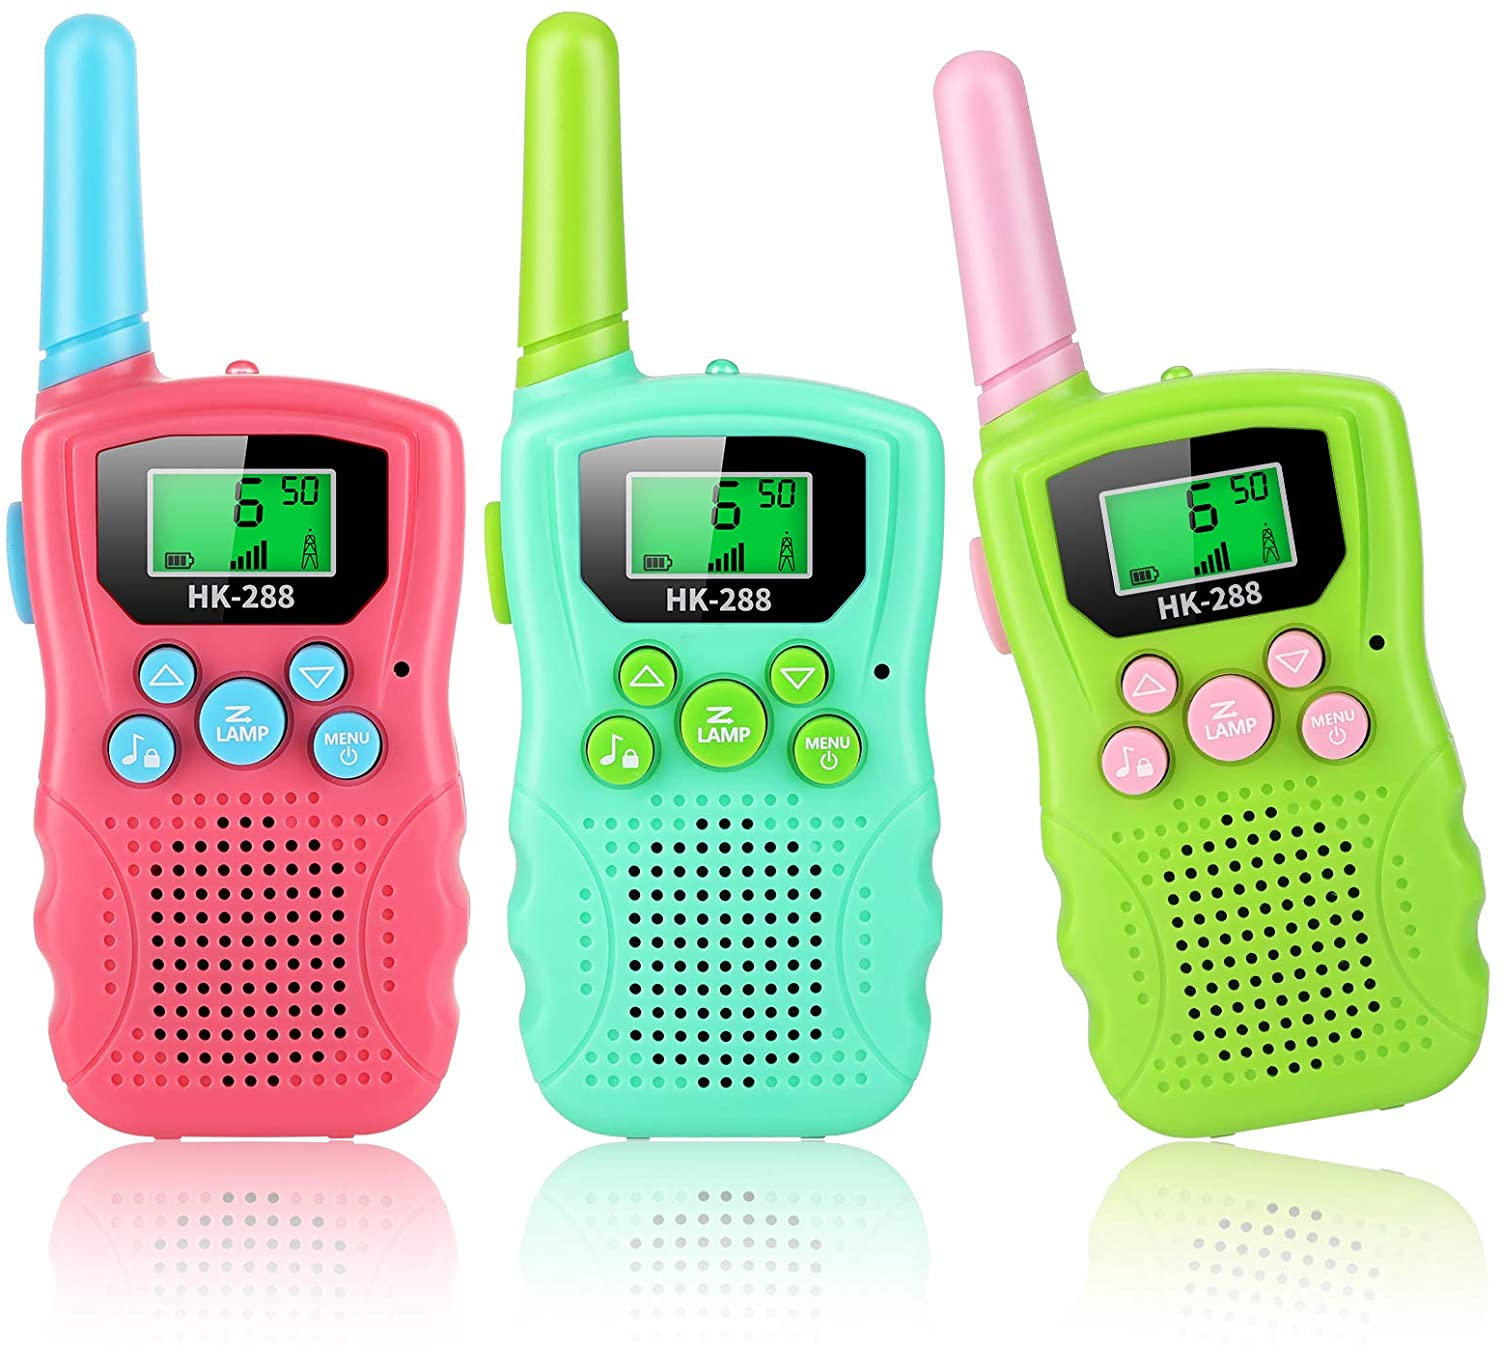 Walkie Talkies for Kids, 3 Pack 22 Channels 2 Way Radio Gifts Kids Toys for Age 3-12 Boys Girls, 3 KMs Long Range Interphone for Outdoor Adventure Game, Camping by AGPTEK